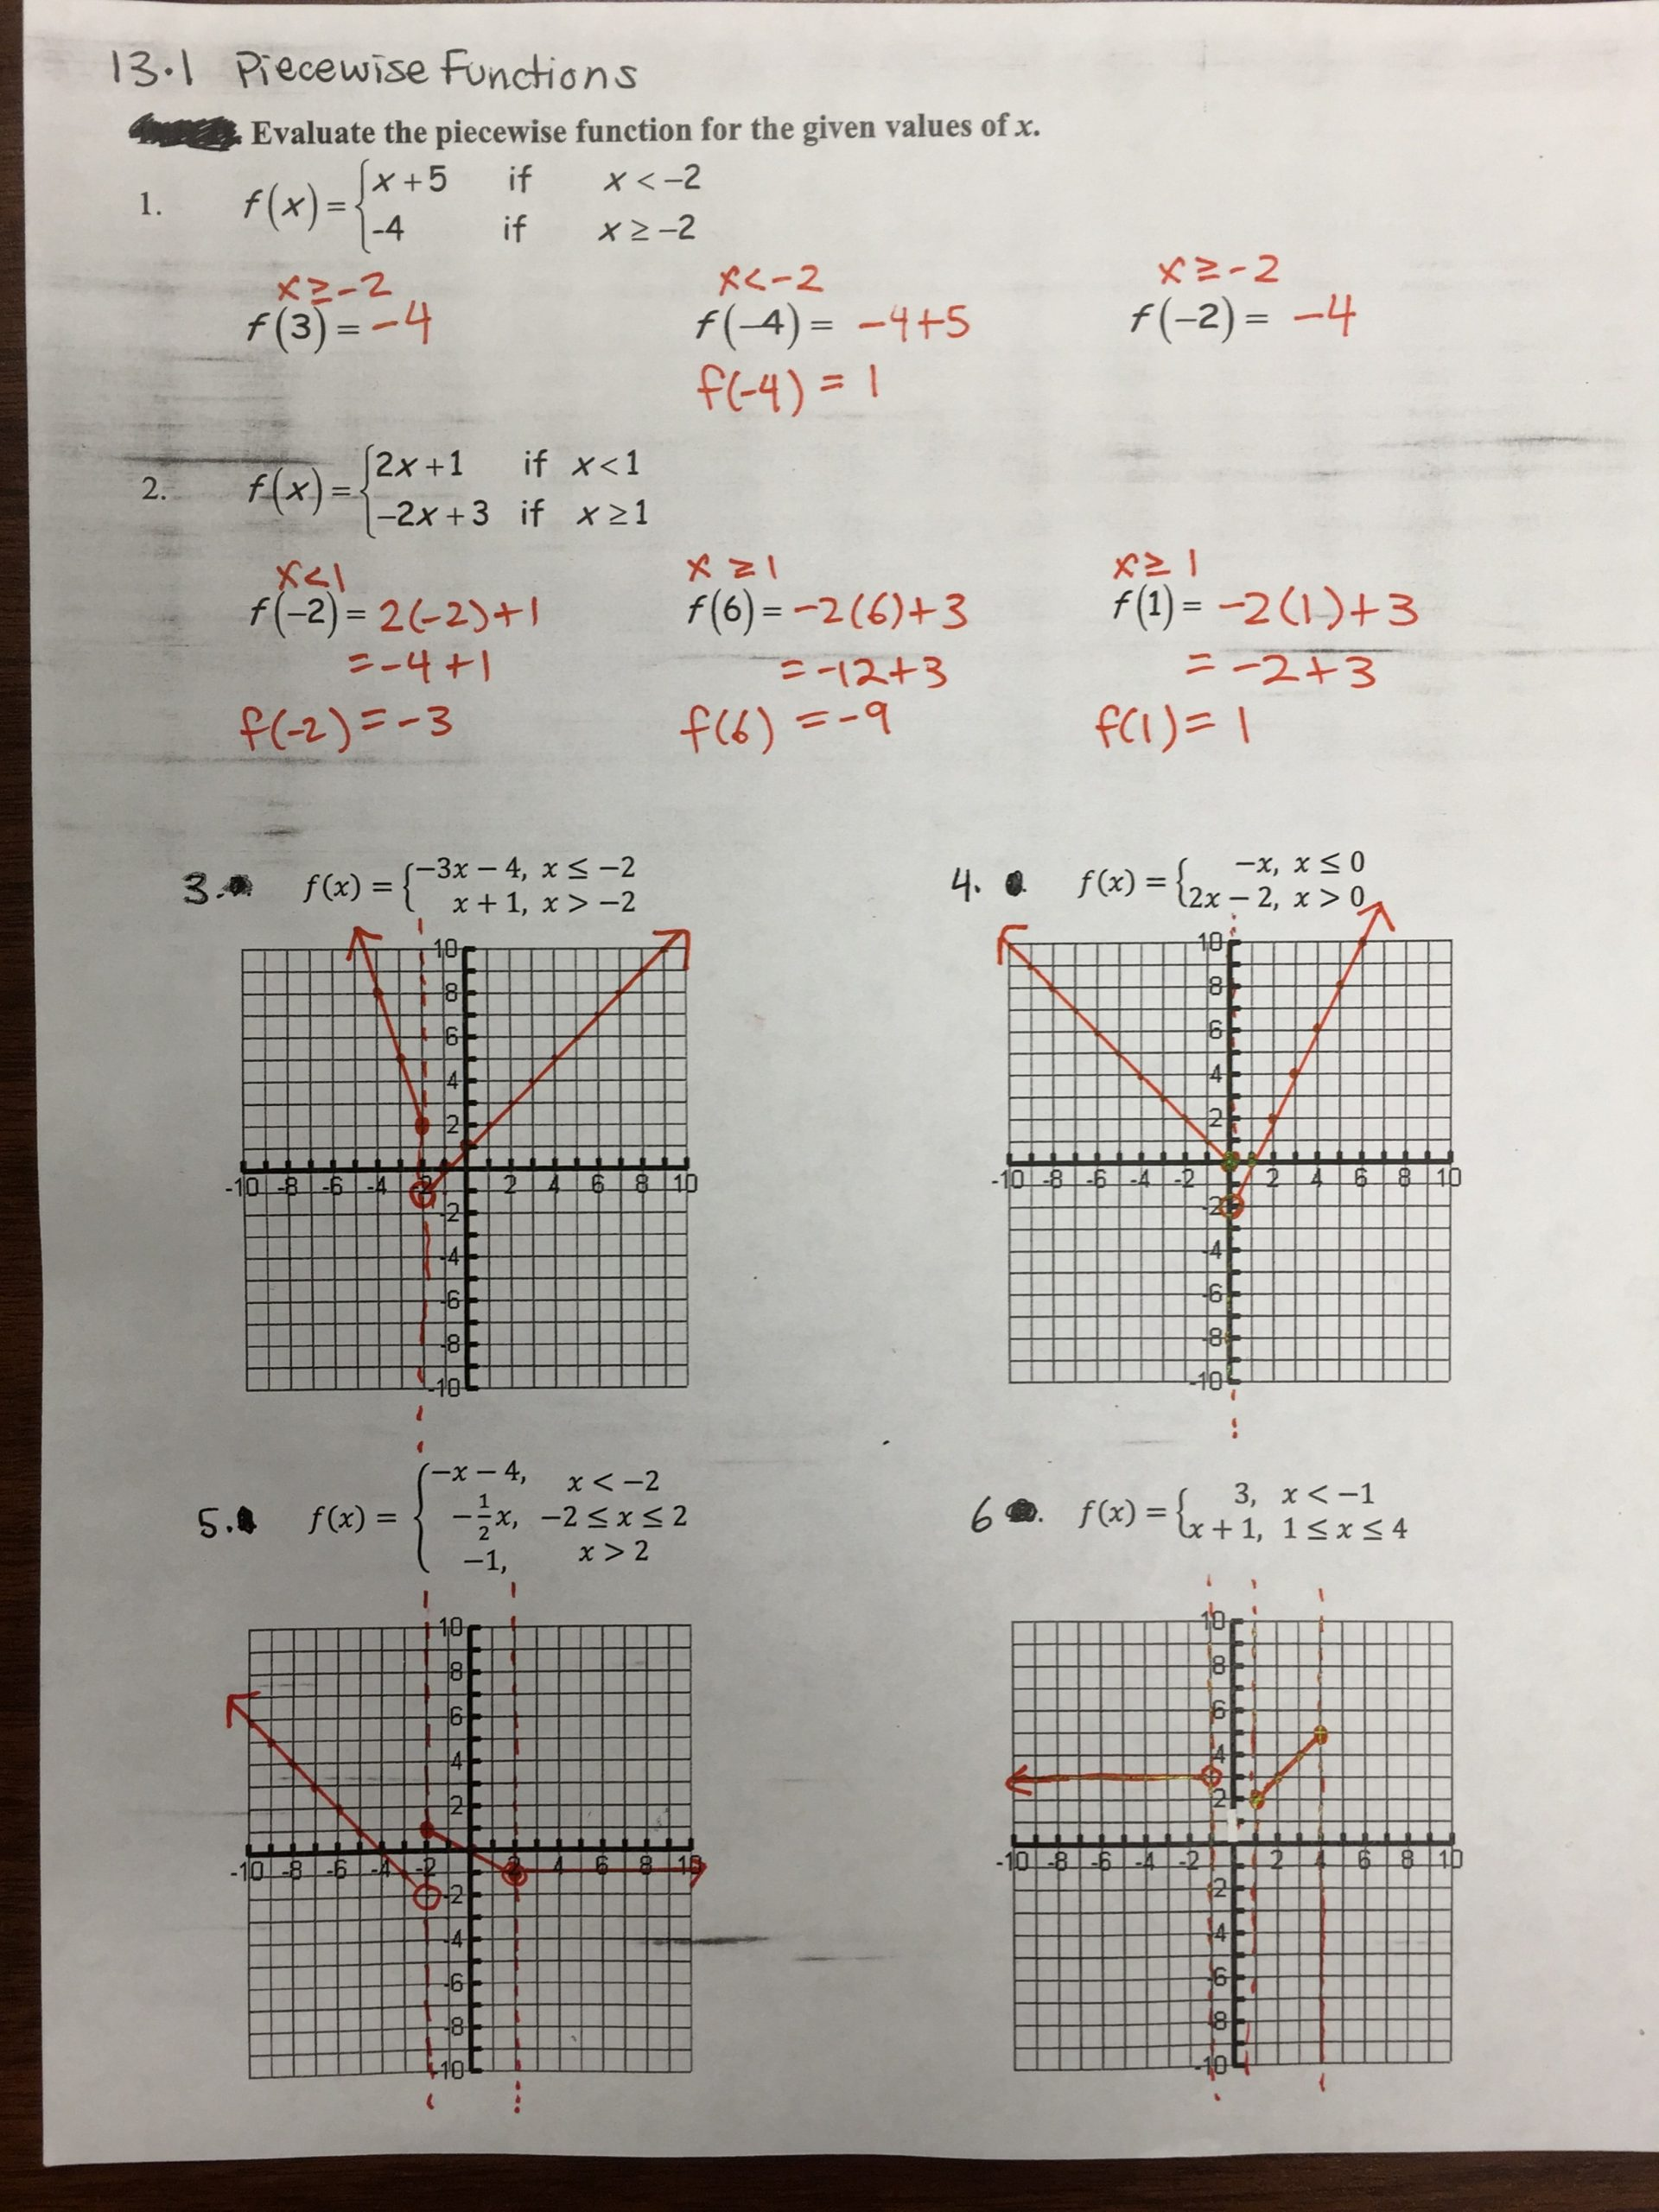 Worksheet Piecewise Functions Answers Key